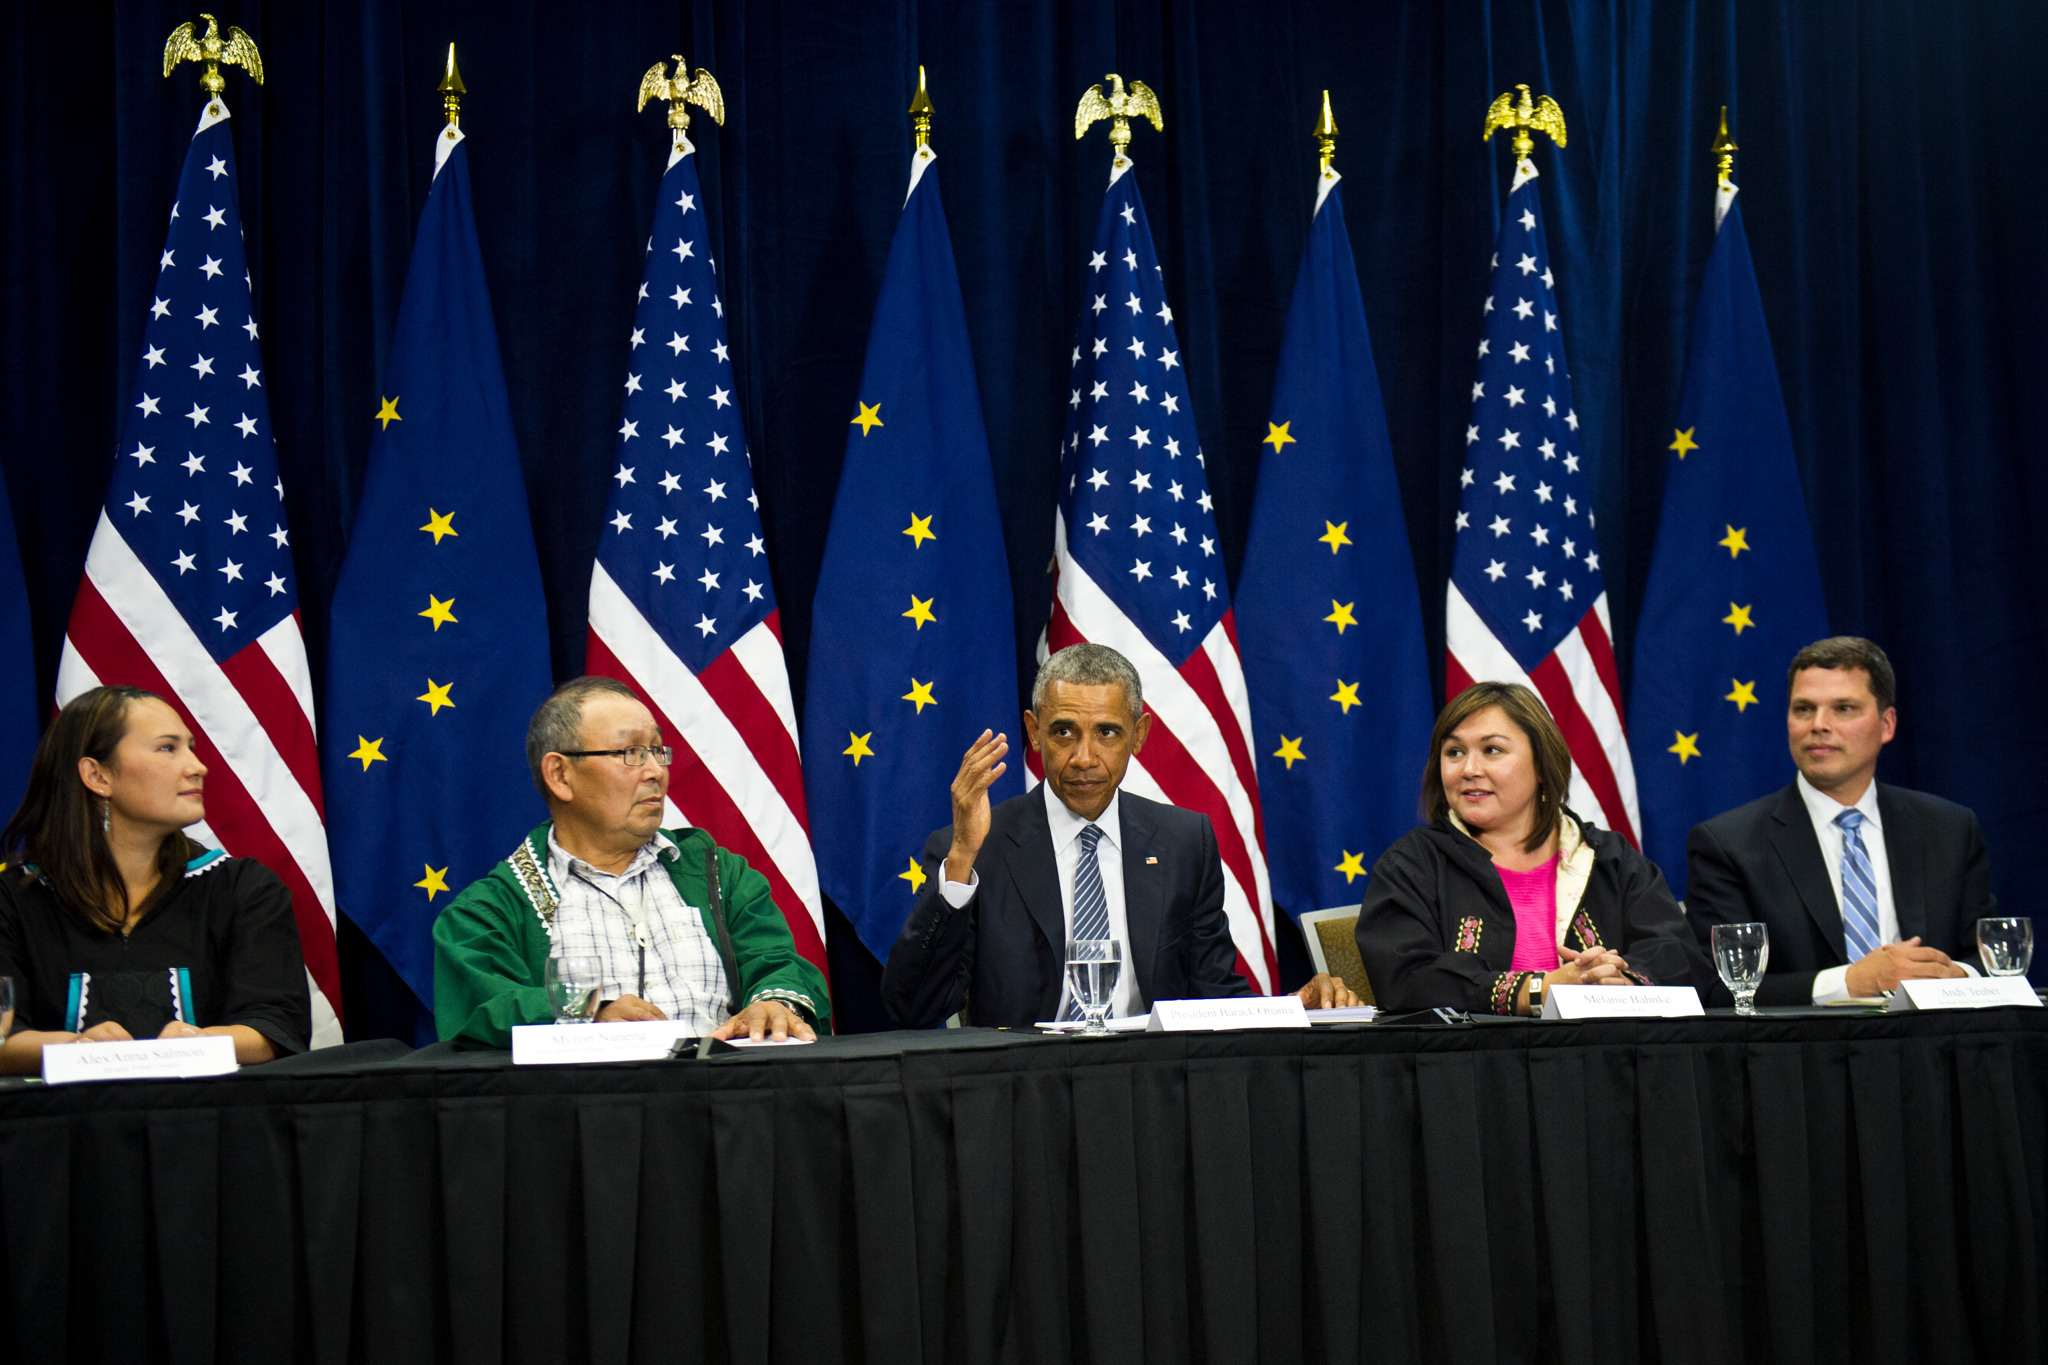 What will federal policies affecting Alaska Natives look like under the Trump administration?